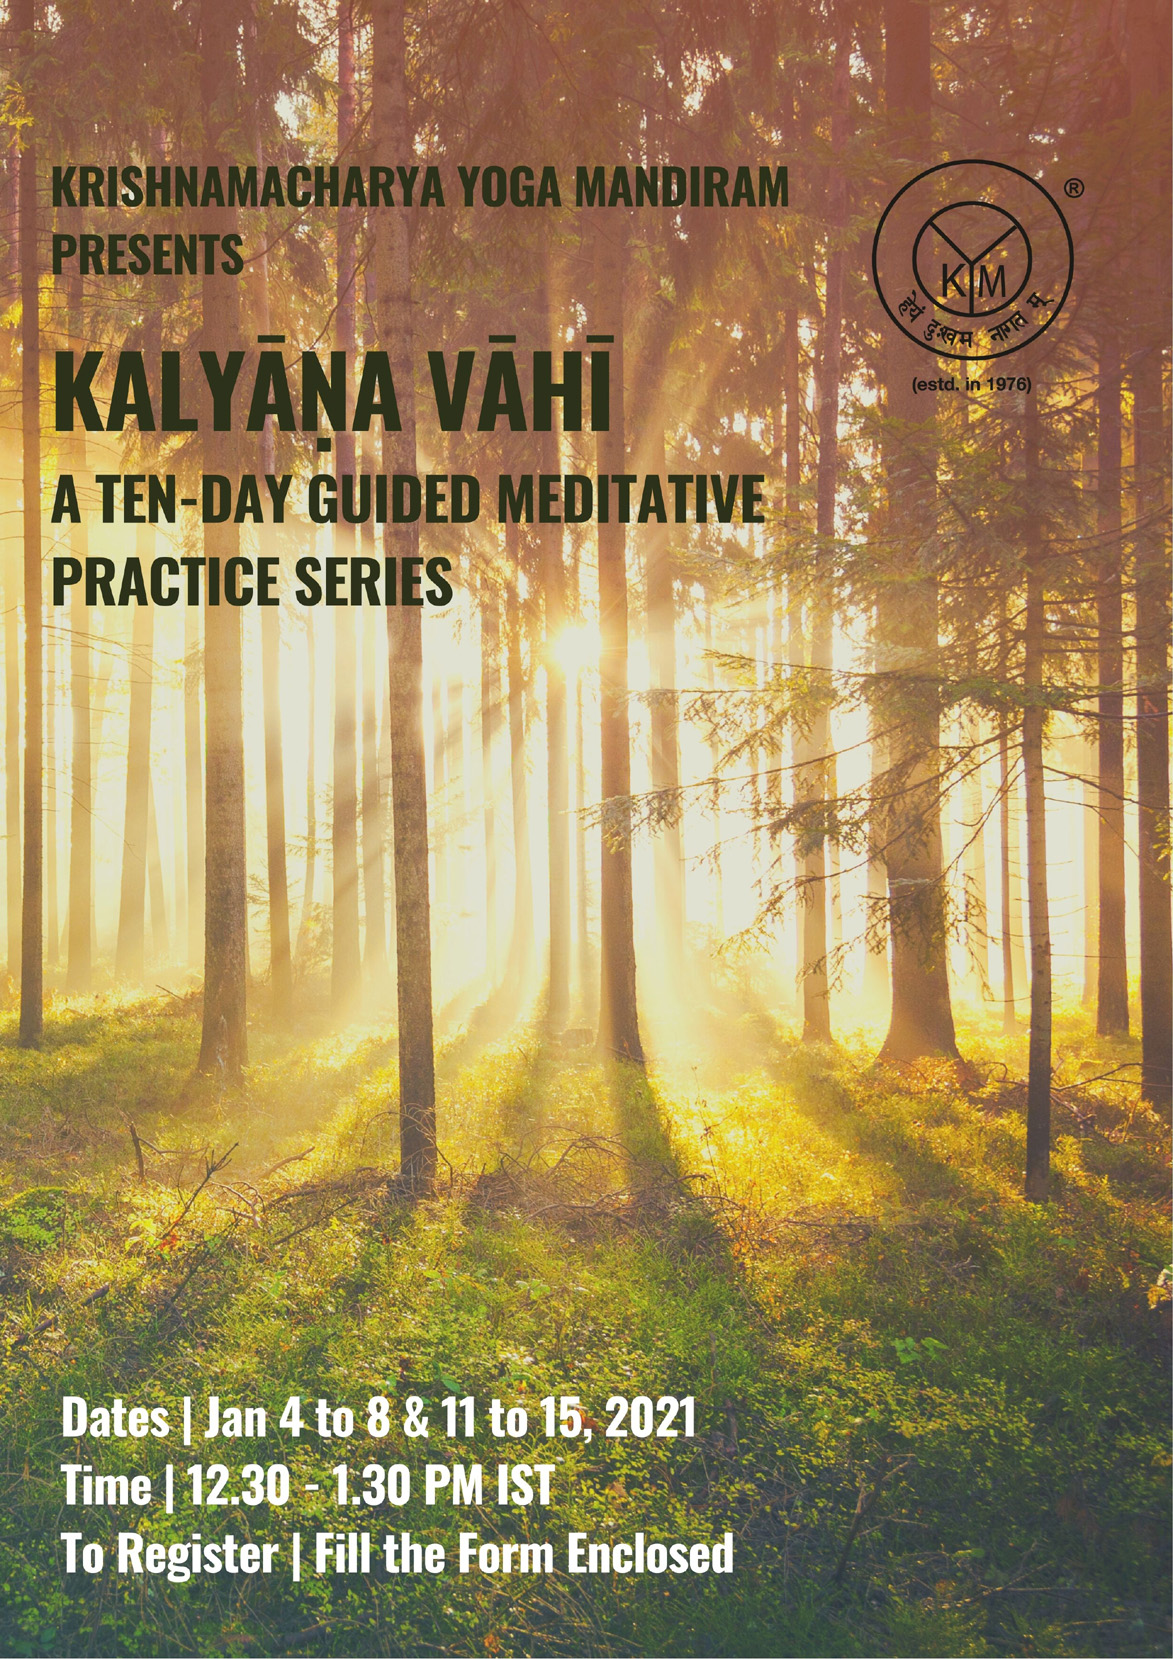 A Ten-Day Guided Meditative Practice Series